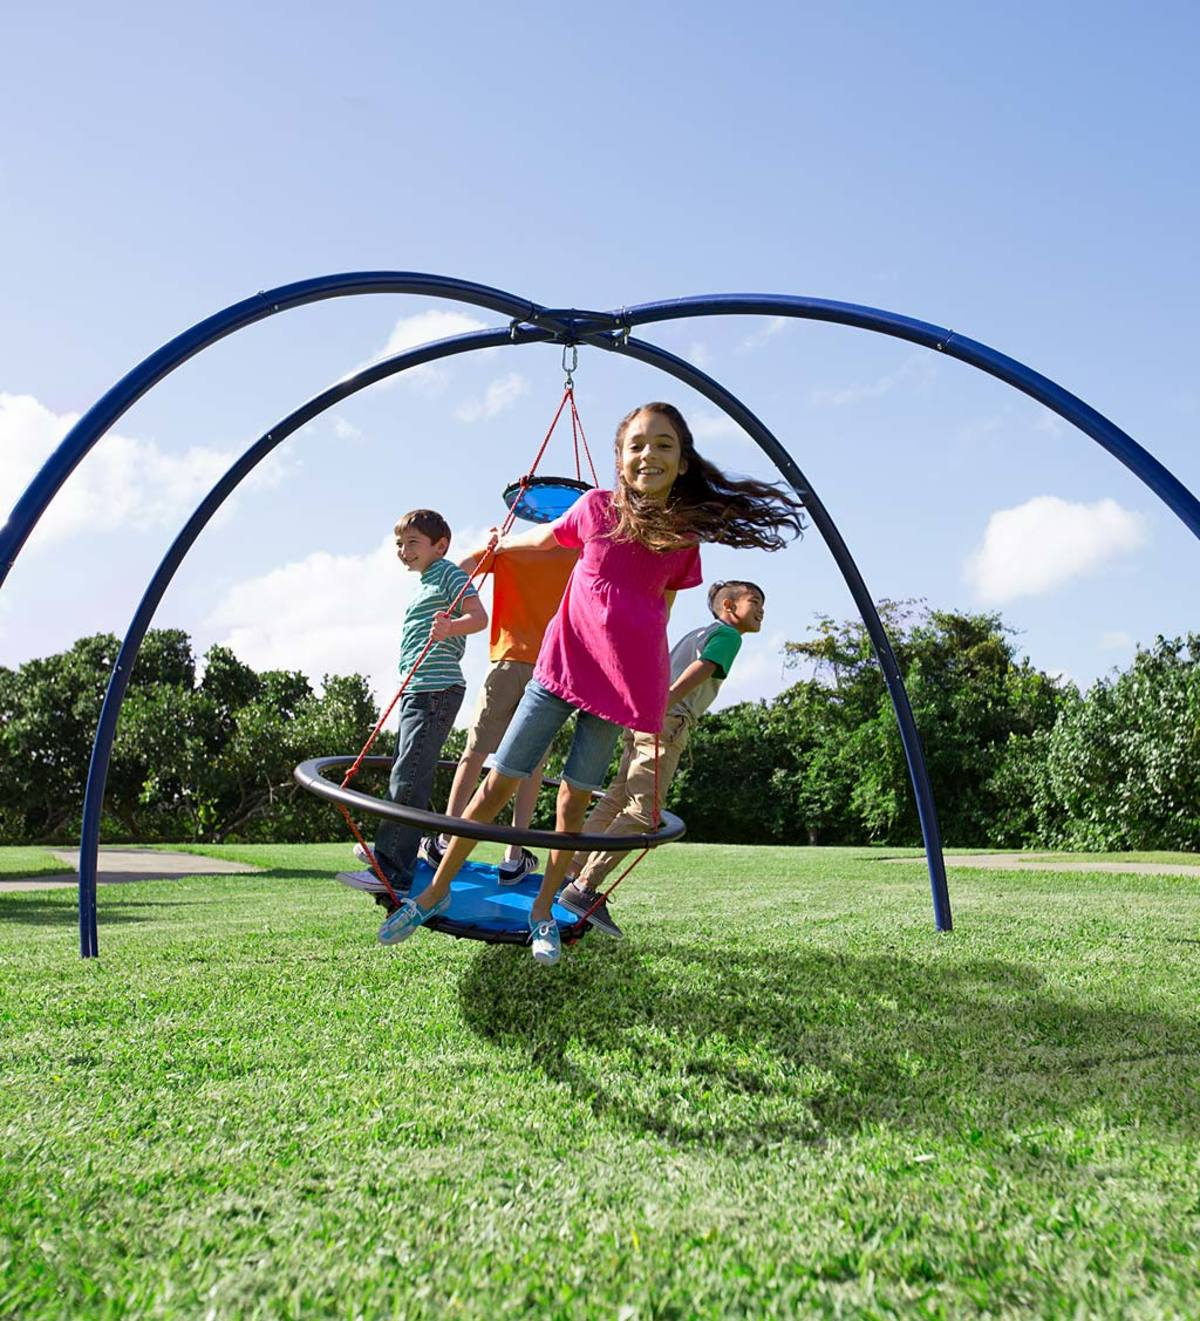 Vortex Spinning Ring Swing And Sky Dome Arched Stand Special Within Favorite Dual Rider Glider Swings With Soft Touch Rope (Gallery 30 of 30)